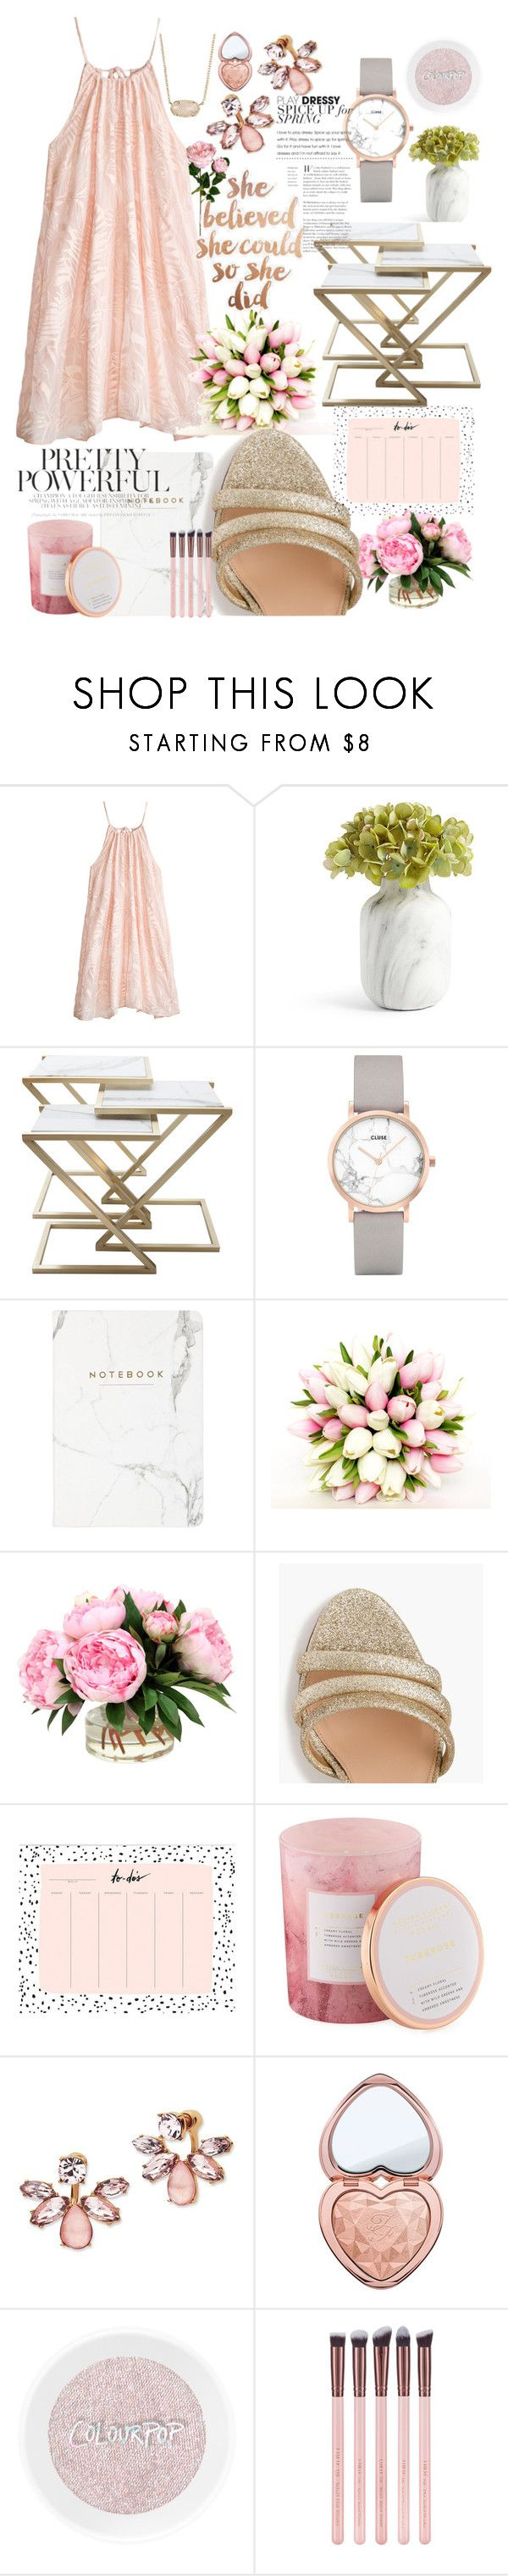 """Dreamy glamour"" by averytheleapinglizard ❤ liked on Polyvore featuring Calypso St. Barth, CLUSE, Eccolo, J.Crew, D.L. & Co., Marchesa, Too Faced Cosmetics and Kendra Scott"